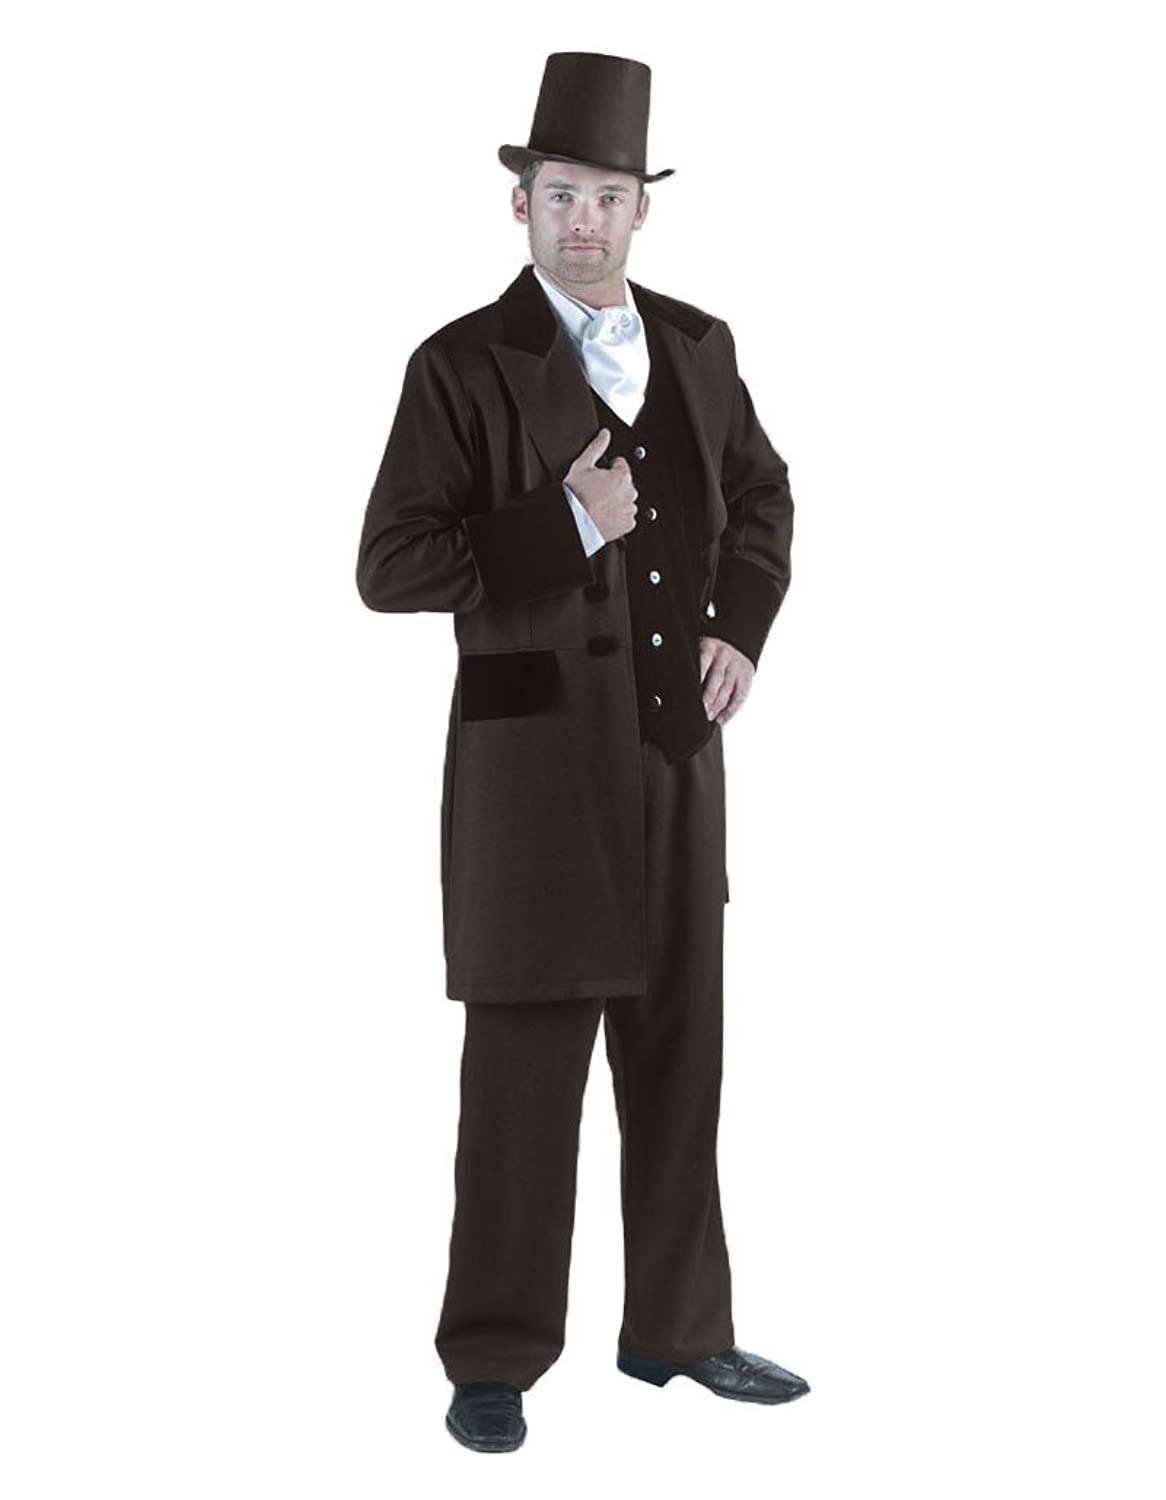 New Vintage Tuxedos, Tailcoats, Morning Suits, Dinner Jackets Mens Rhett Butler Suit Theater Costume $249.99 AT vintagedancer.com